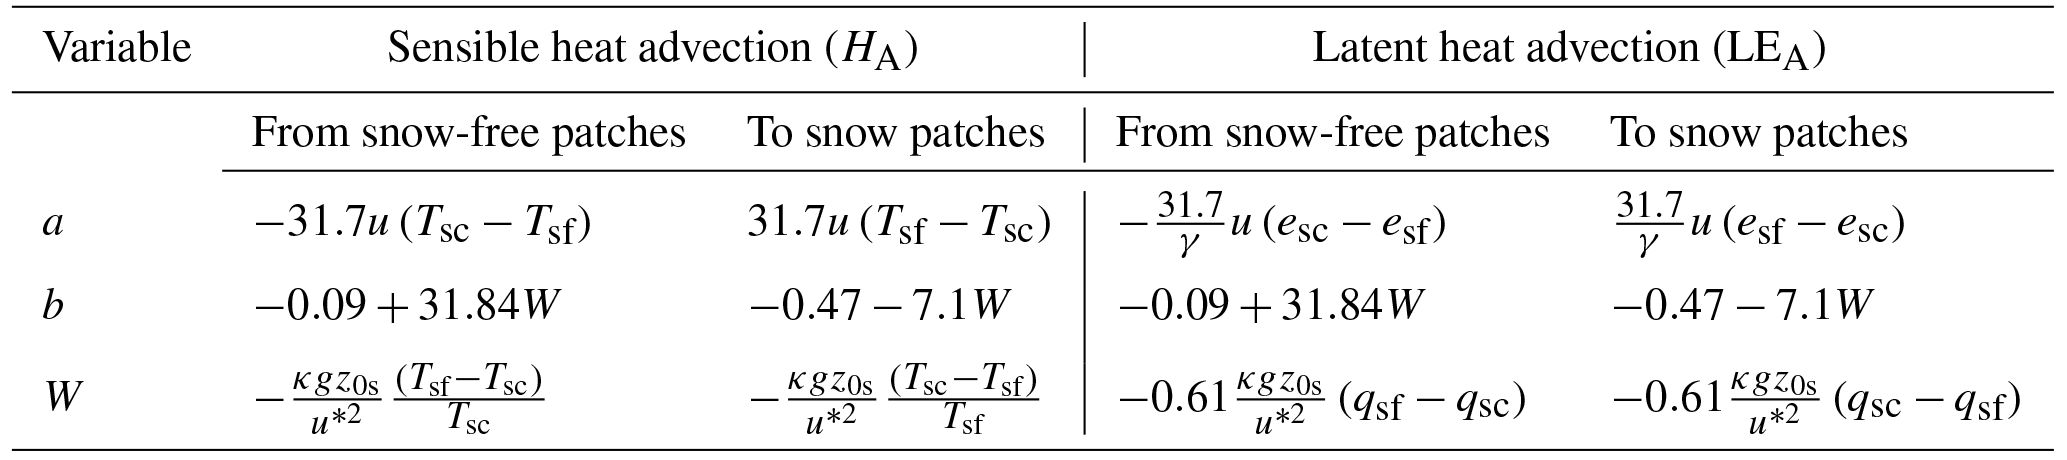 HESS - A simple model for local-scale sensible and latent